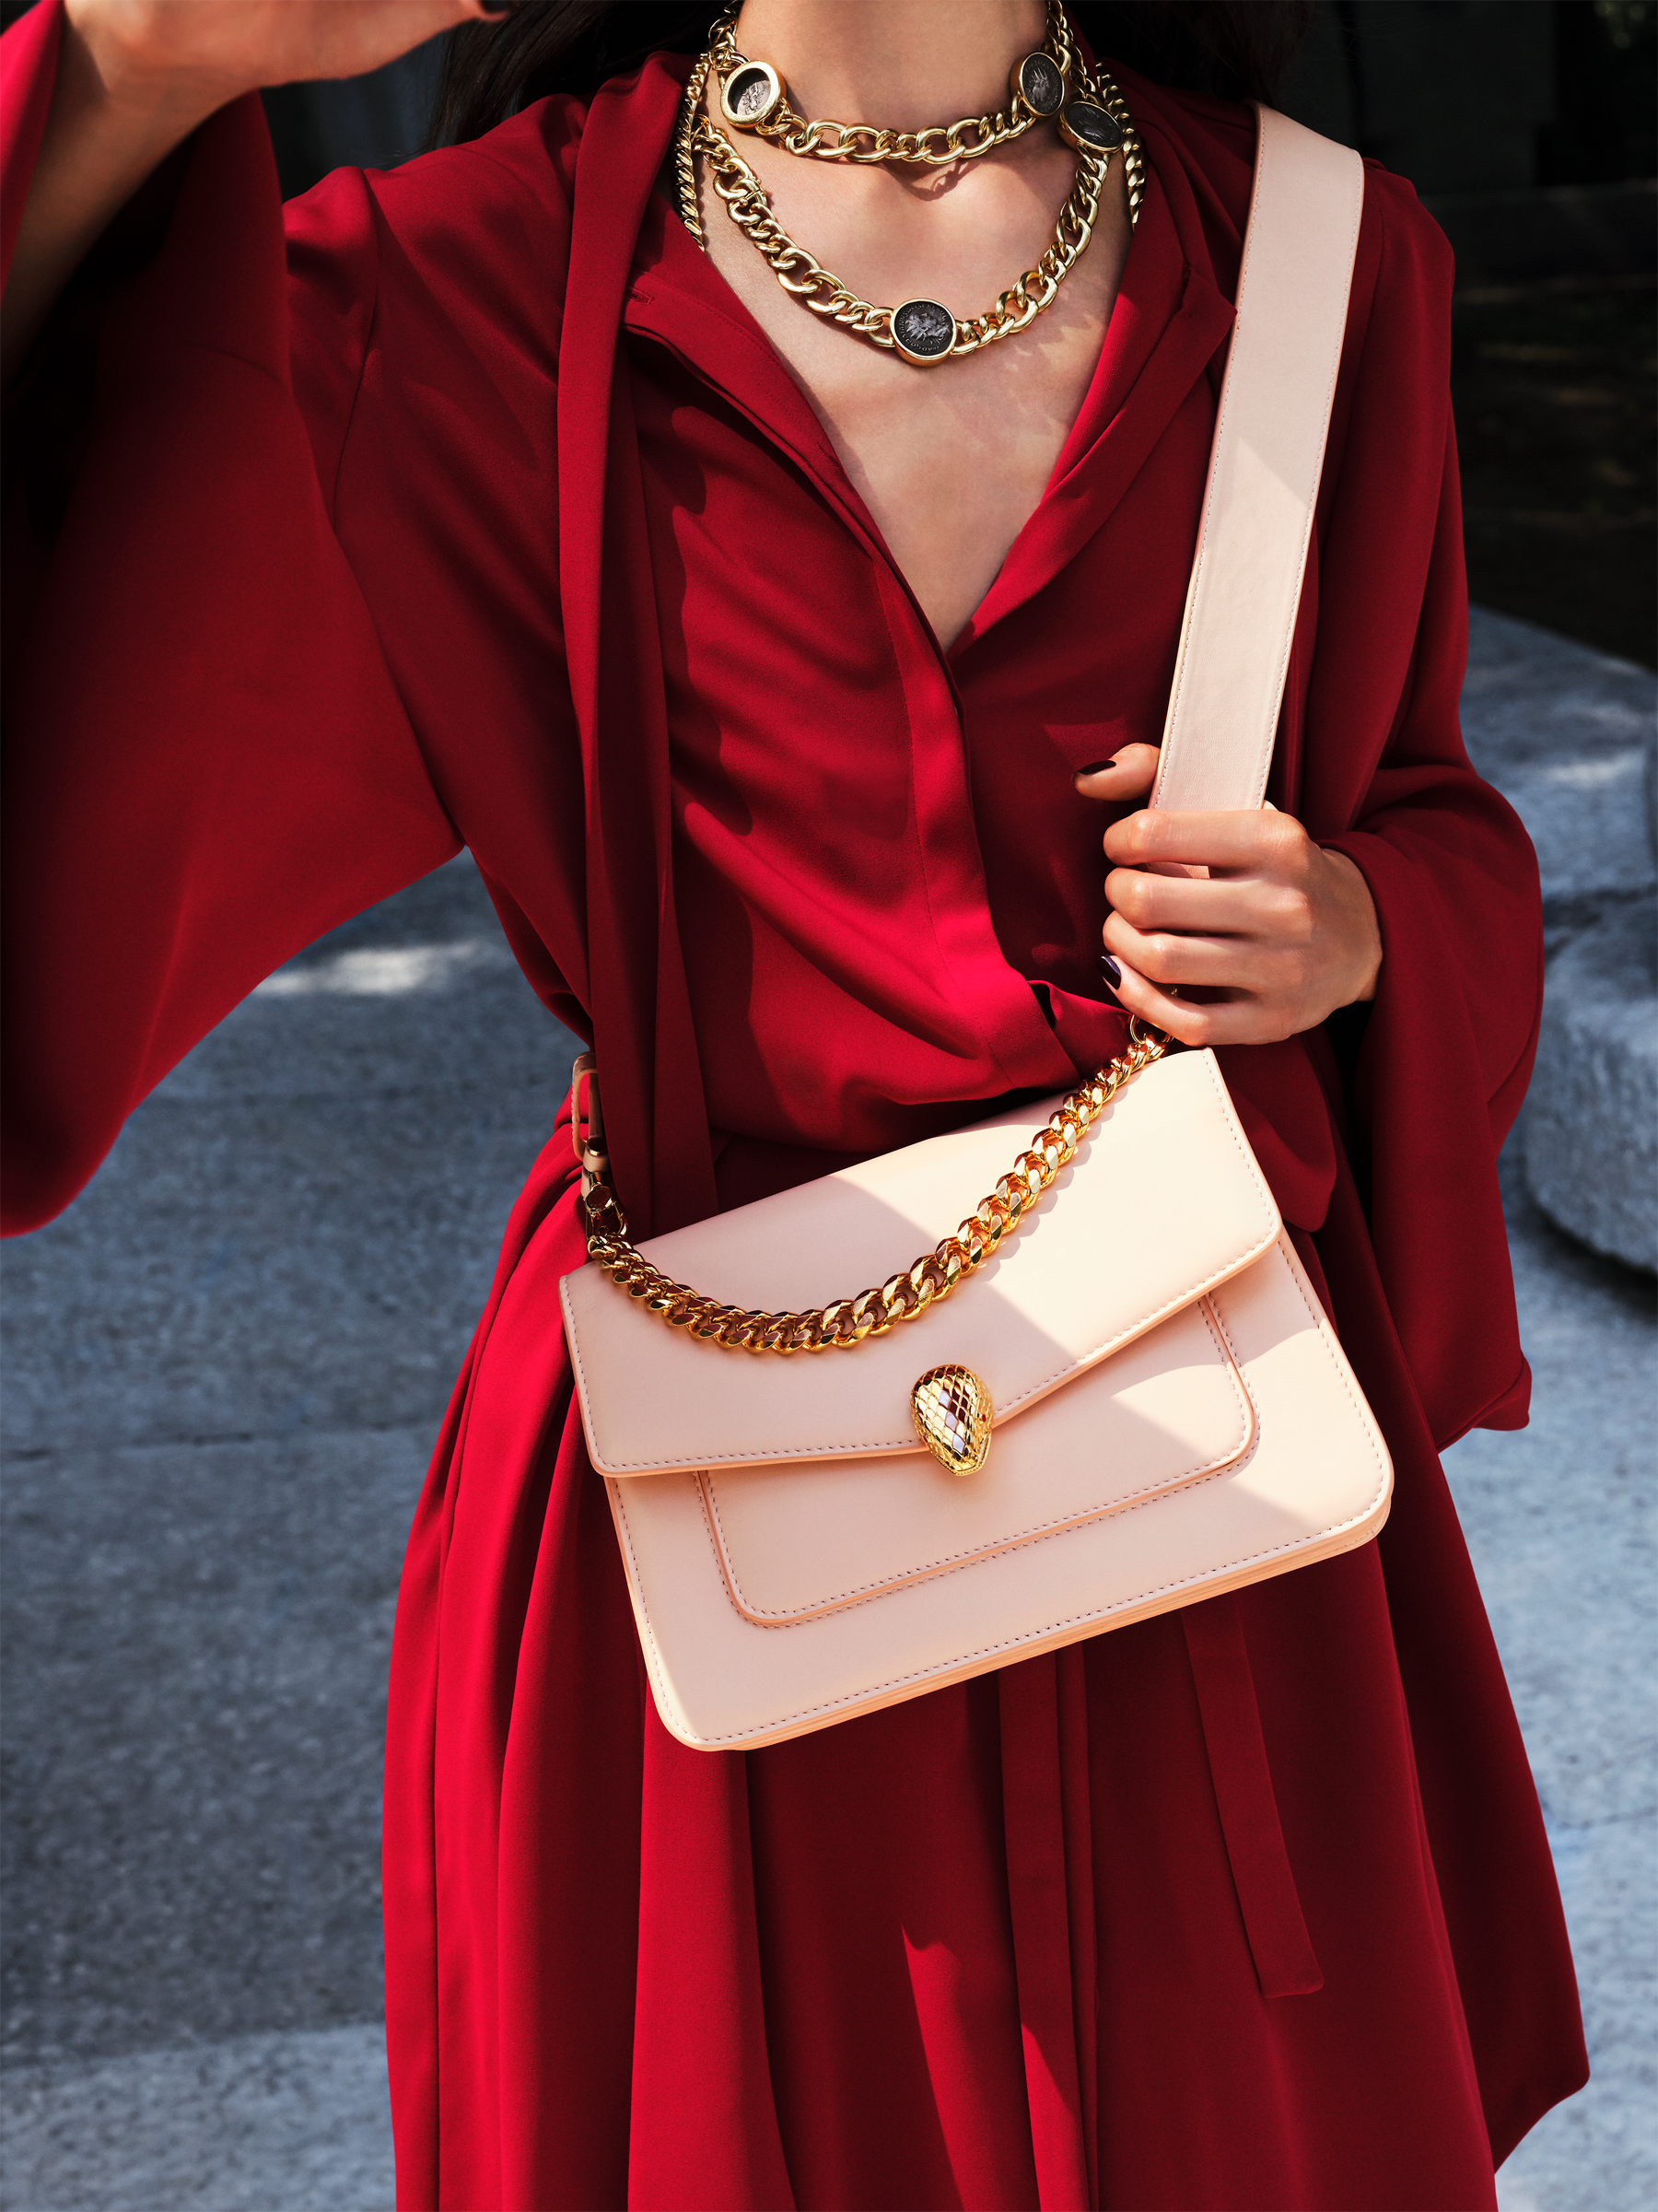 """Serpenti Forever"" maxi chain crossbody bag in Amaranth Garnet red nappa leather, with Pink Spinel fuchsia nappa leather internal lining. New Serpenti head closure in gold plated brass, finished with small red carnelian scales in the middle and red enamel eyes. 1138-MCN image 5"